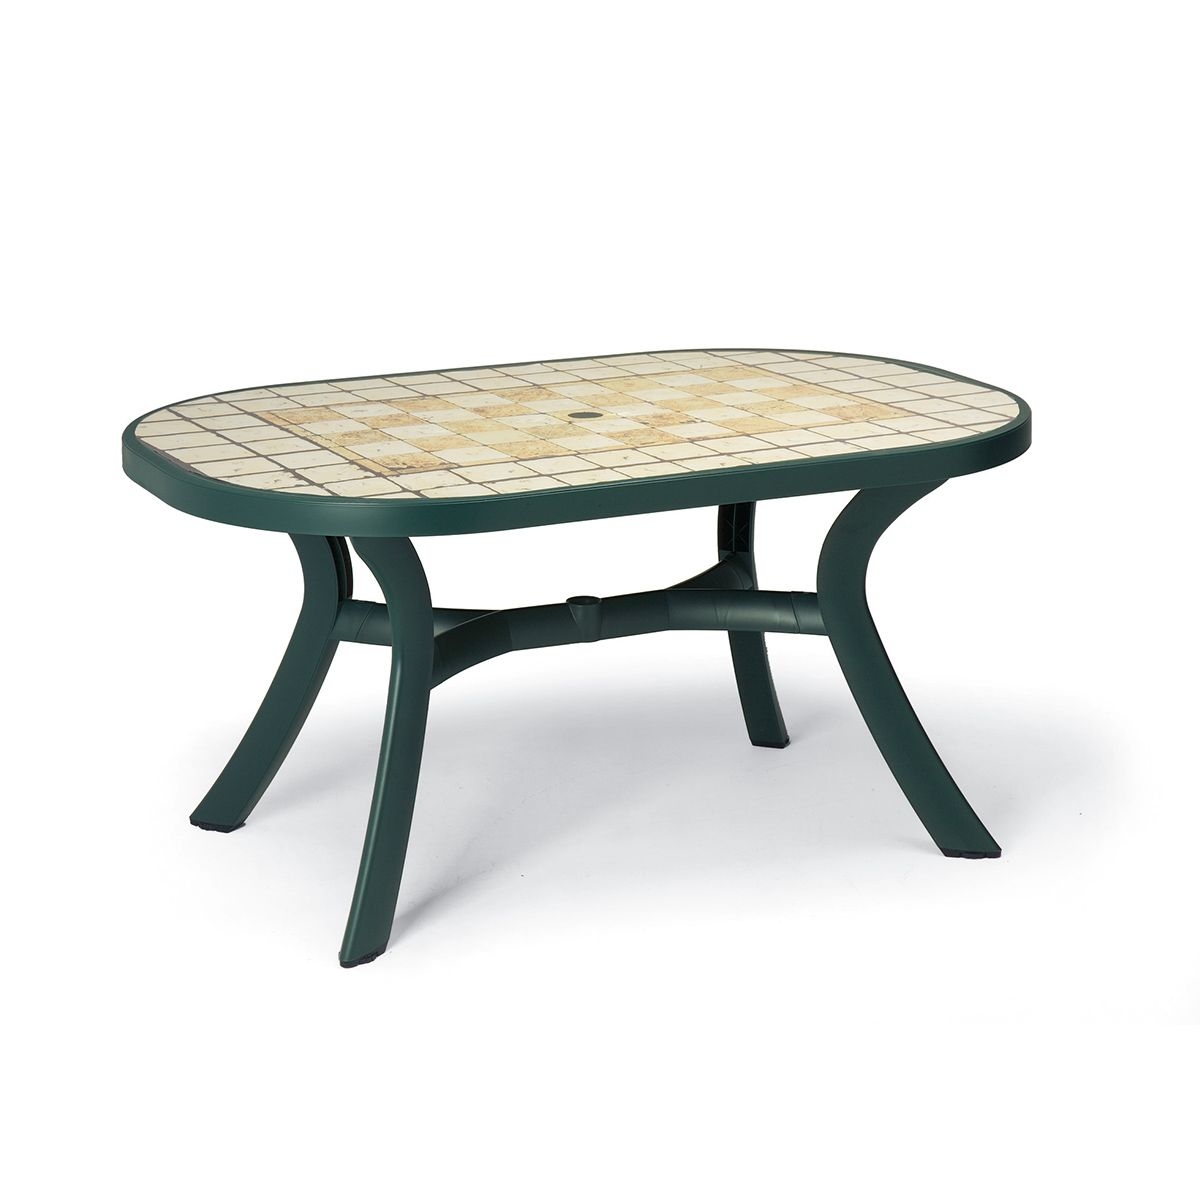 Table de jardin plastique toscana ovale zendart design - Table de jardin design ...